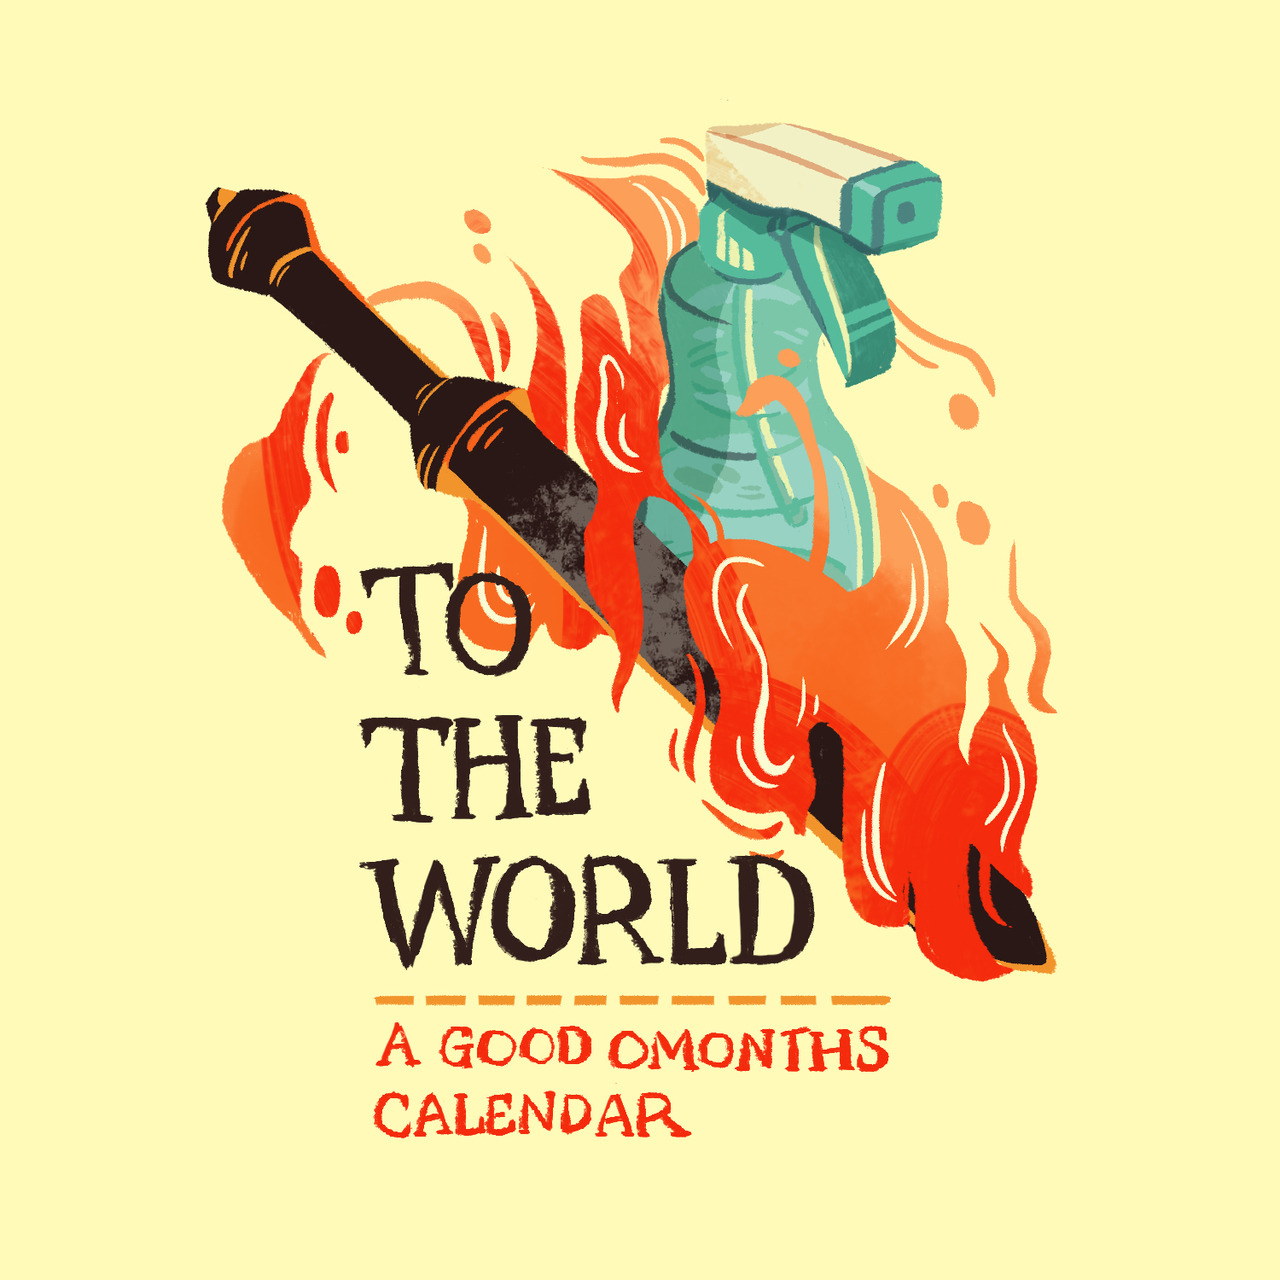 To The World, A Good Omens 2020 Calendar — To The World, A throughout Hmrc Tax Calendar 2020 2020